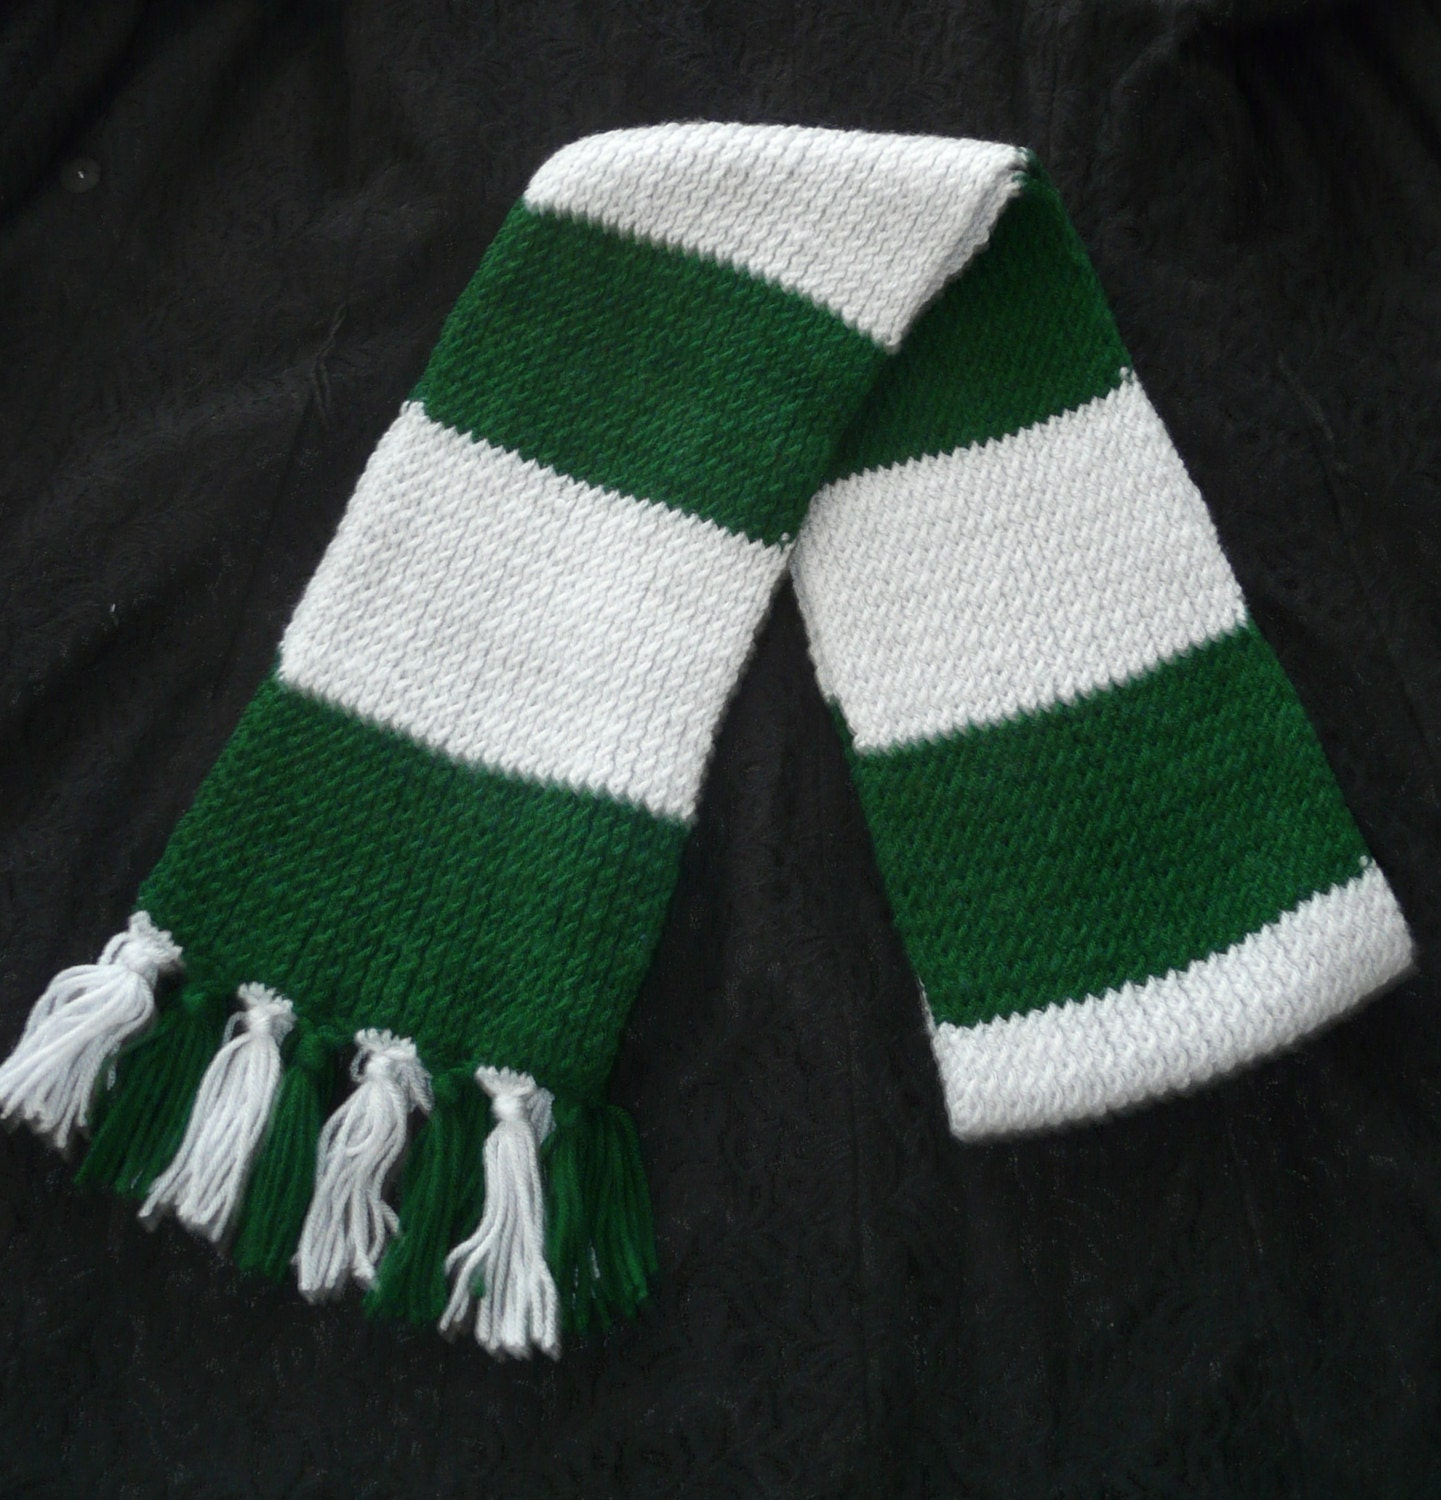 Harry Potter Scarf Knitting Pattern Slytherin : Harry Potter Slytherin knit scarf with tassels by AinsDesign